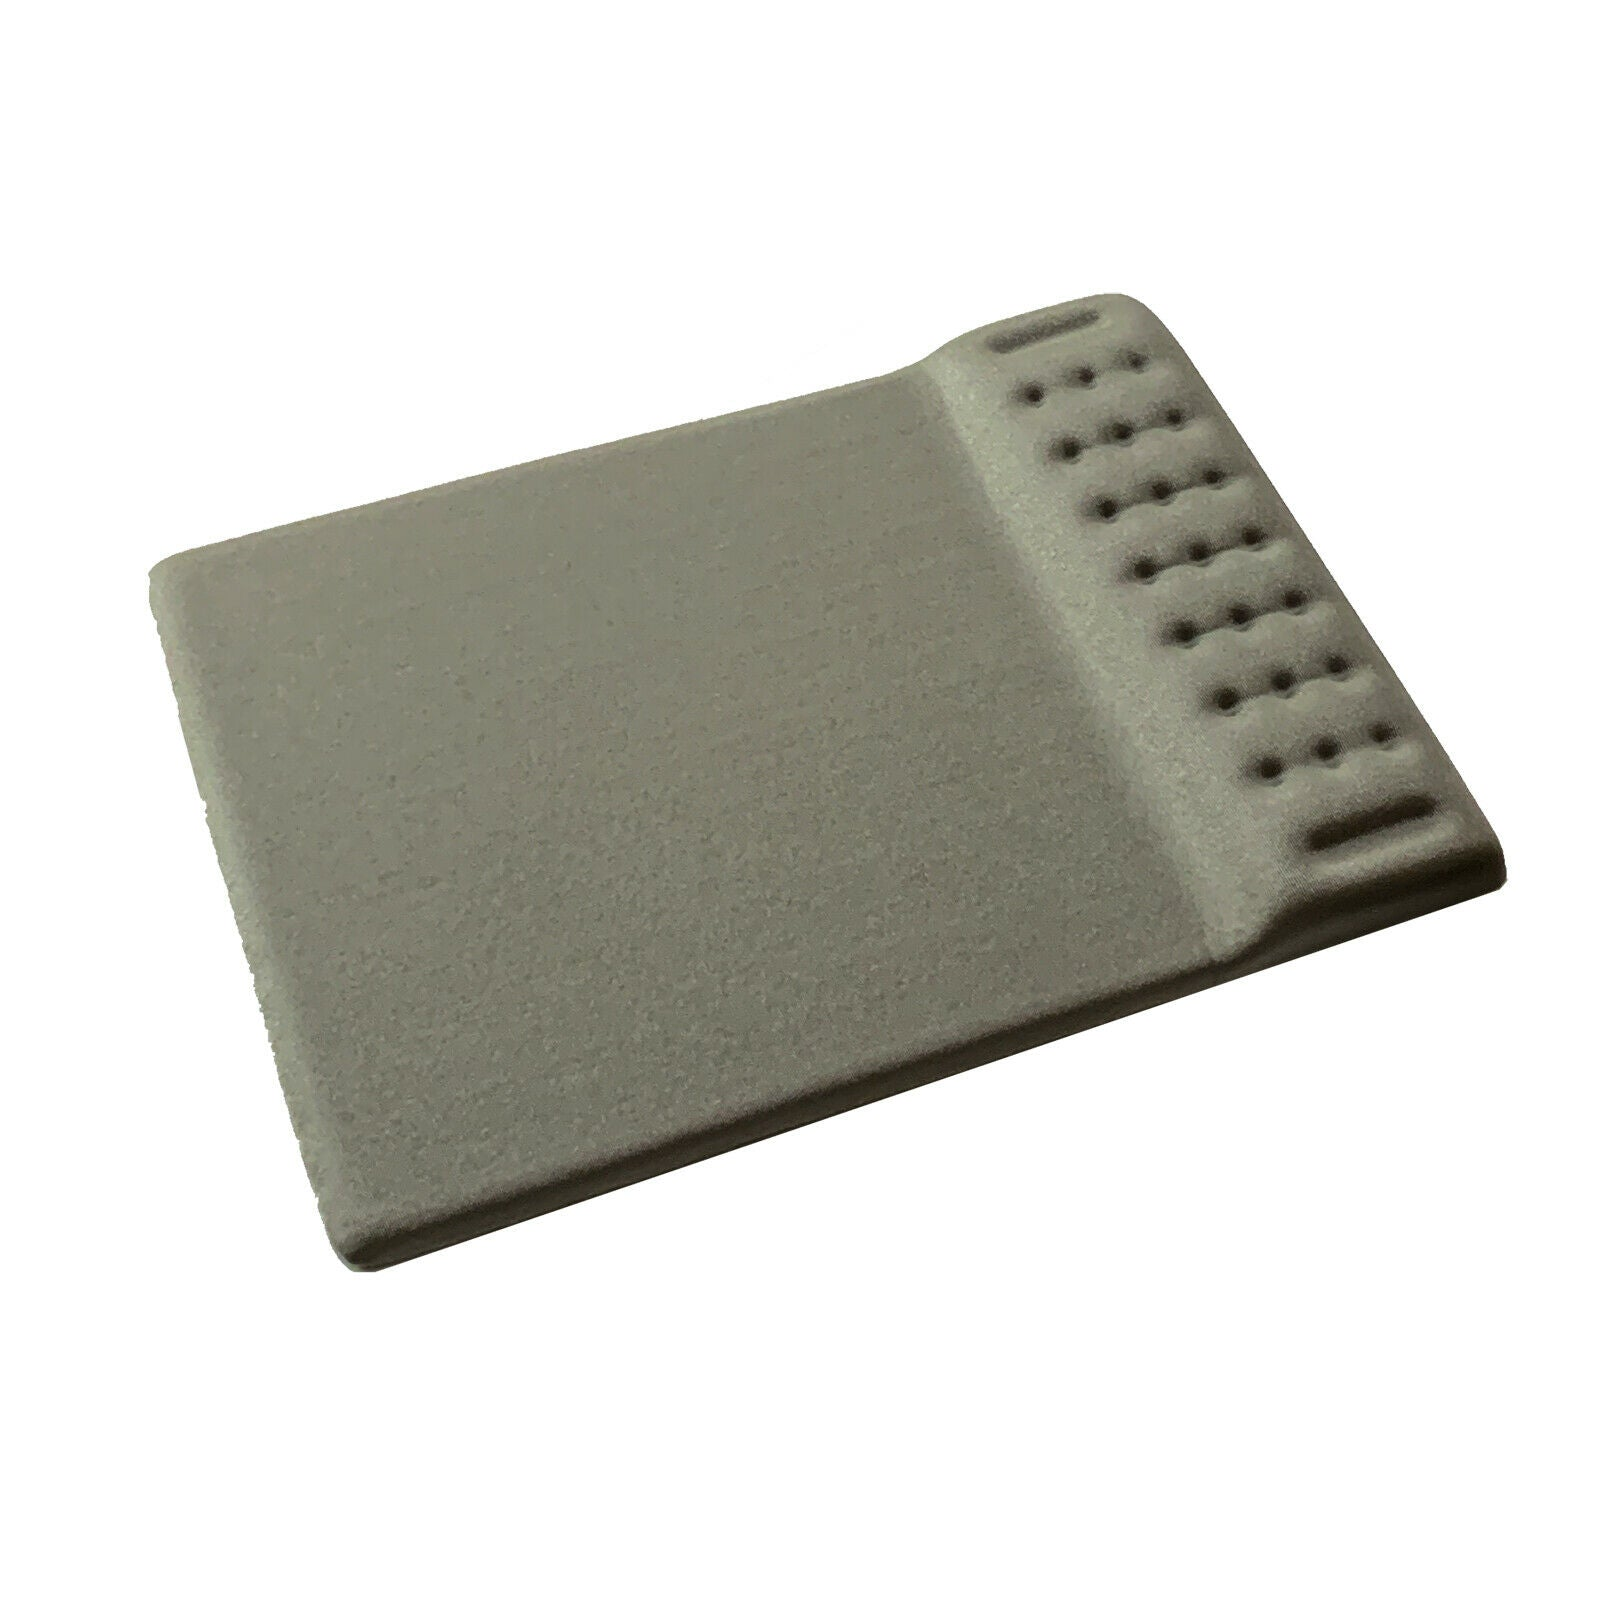 Grey - Ergonomic Non Slip Mouse Pad with Memory Foam Wrist Rest Cushion Support